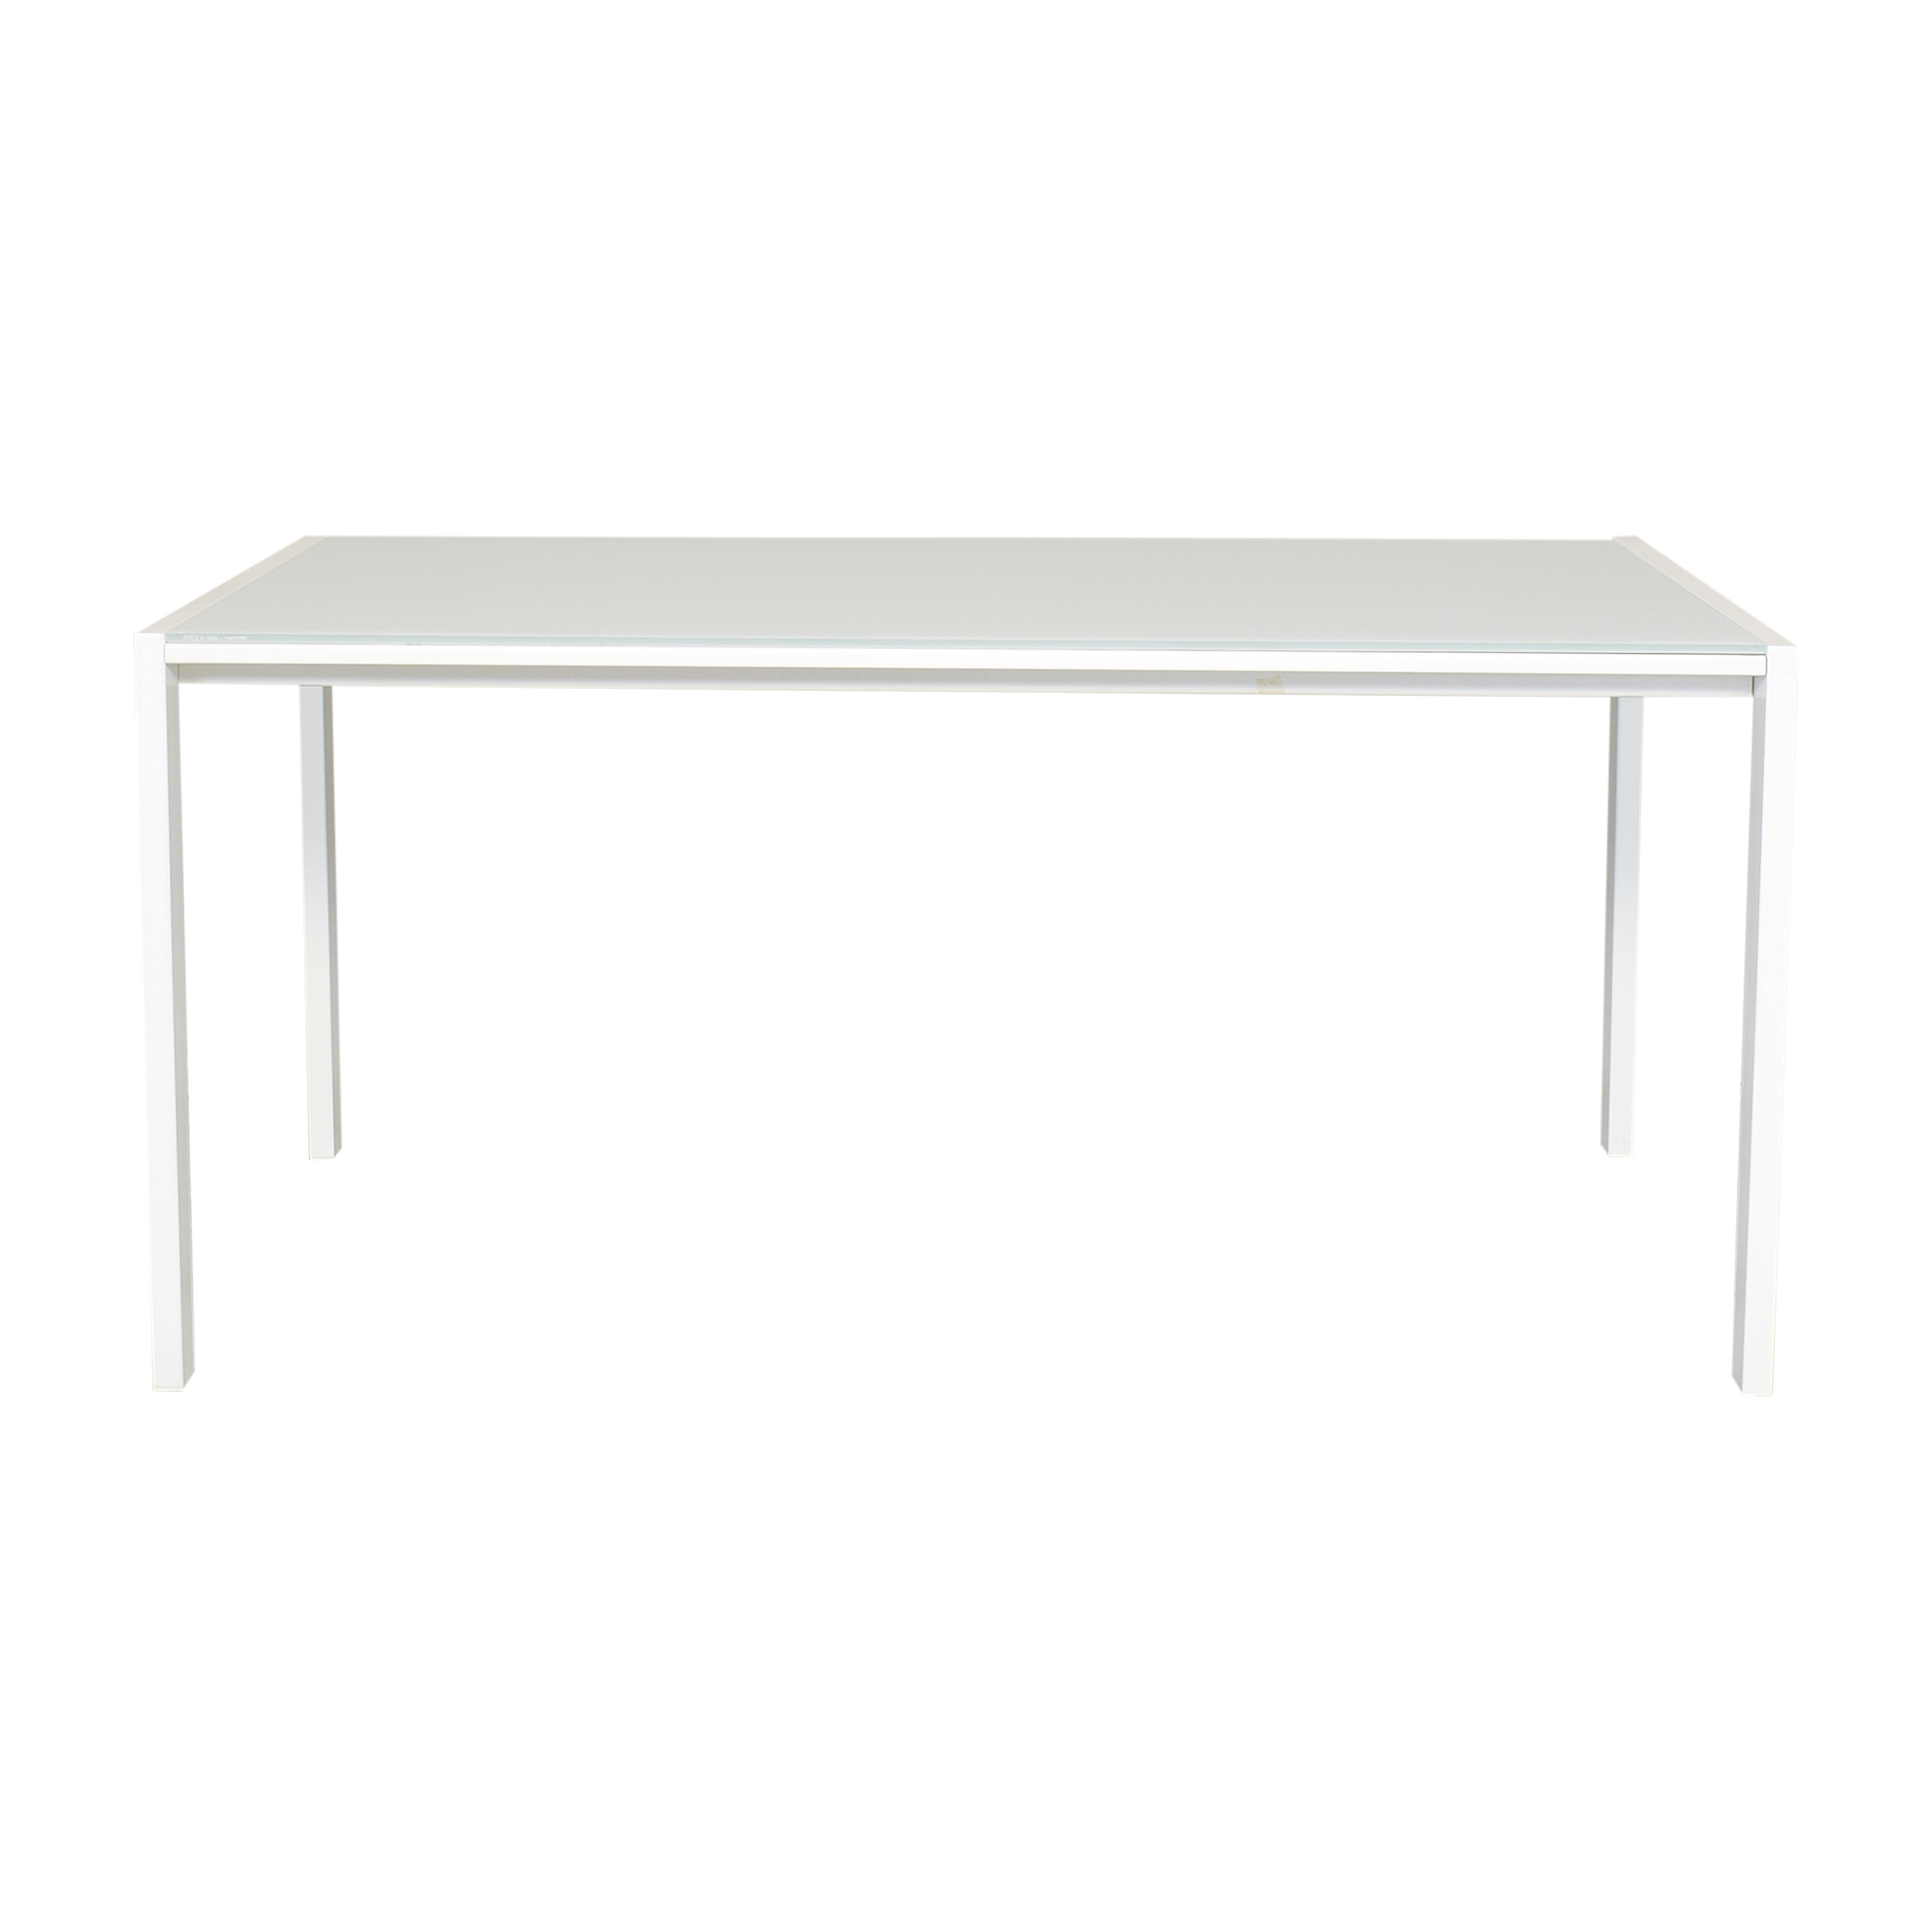 Room & Board Room & Board Opla Extension Dining Table on sale